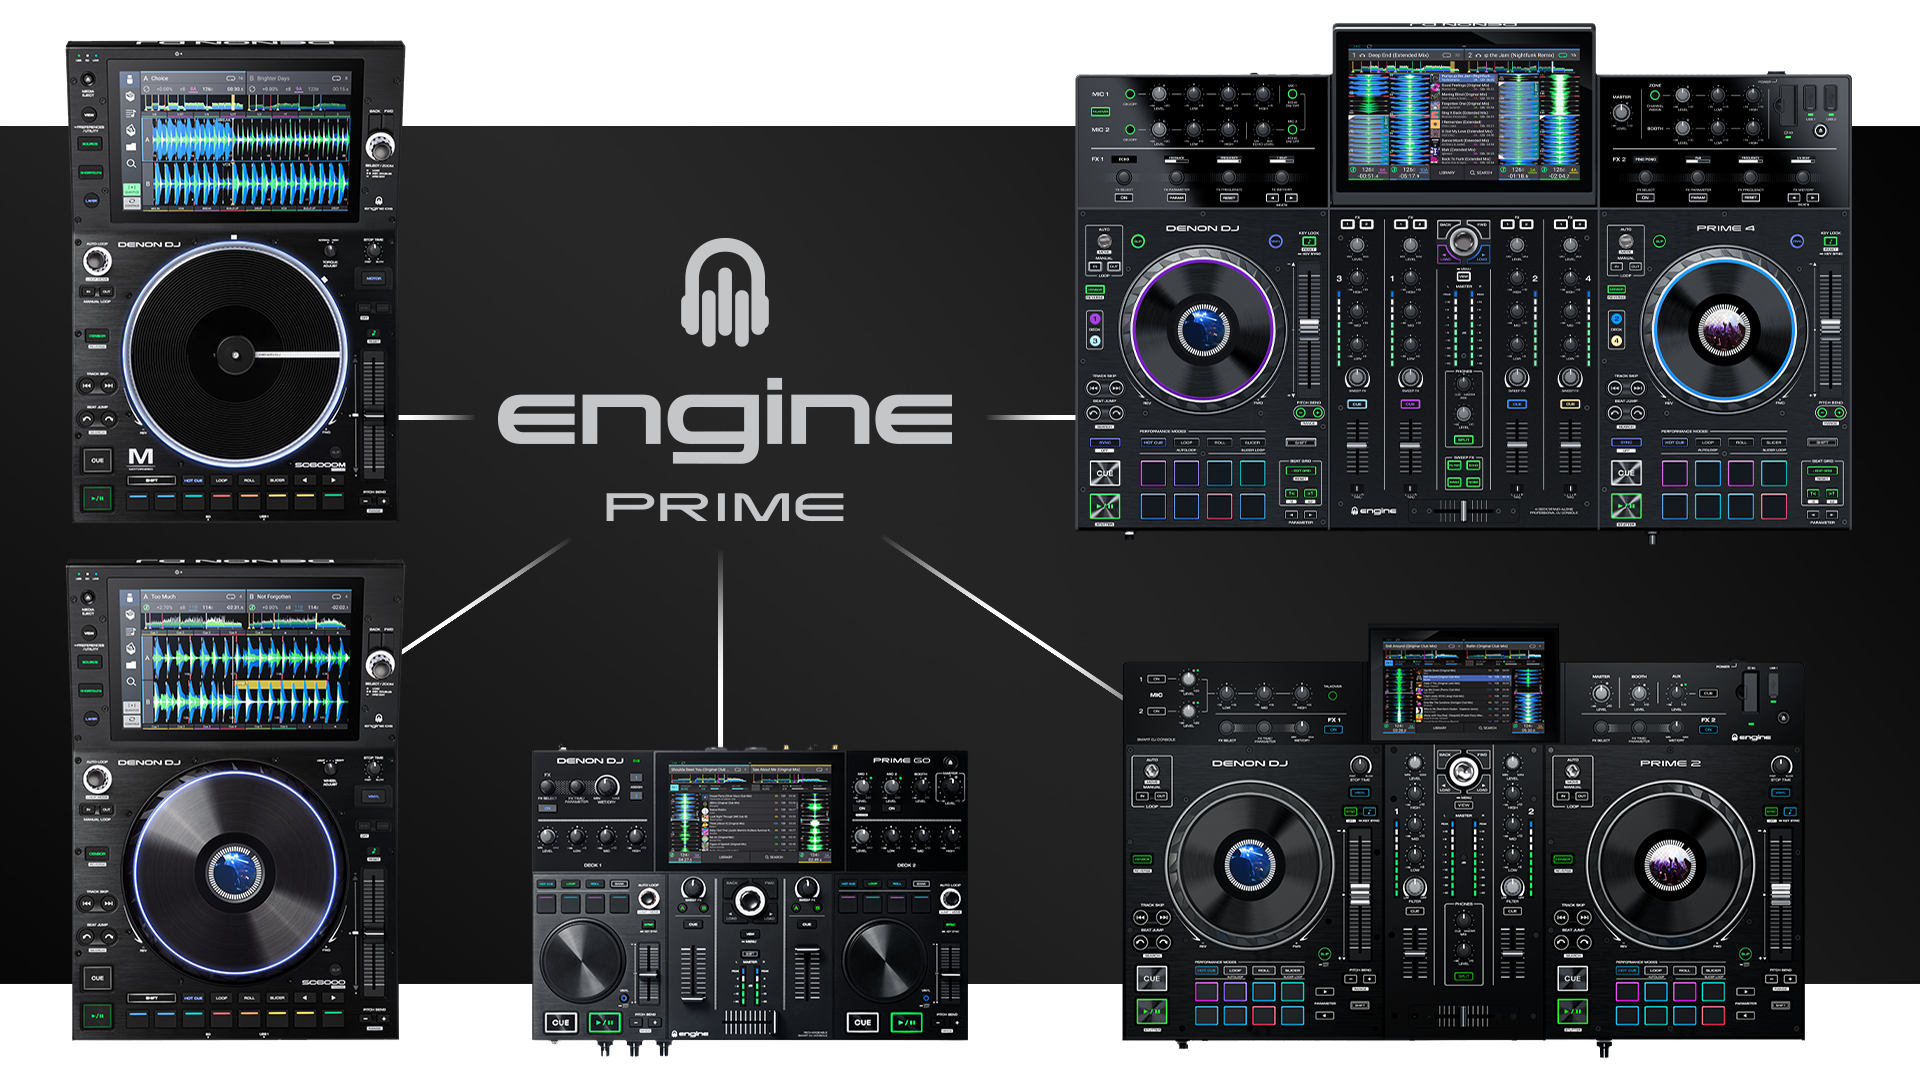 Engine Prime can play tracks from a variety of services, sources and formats